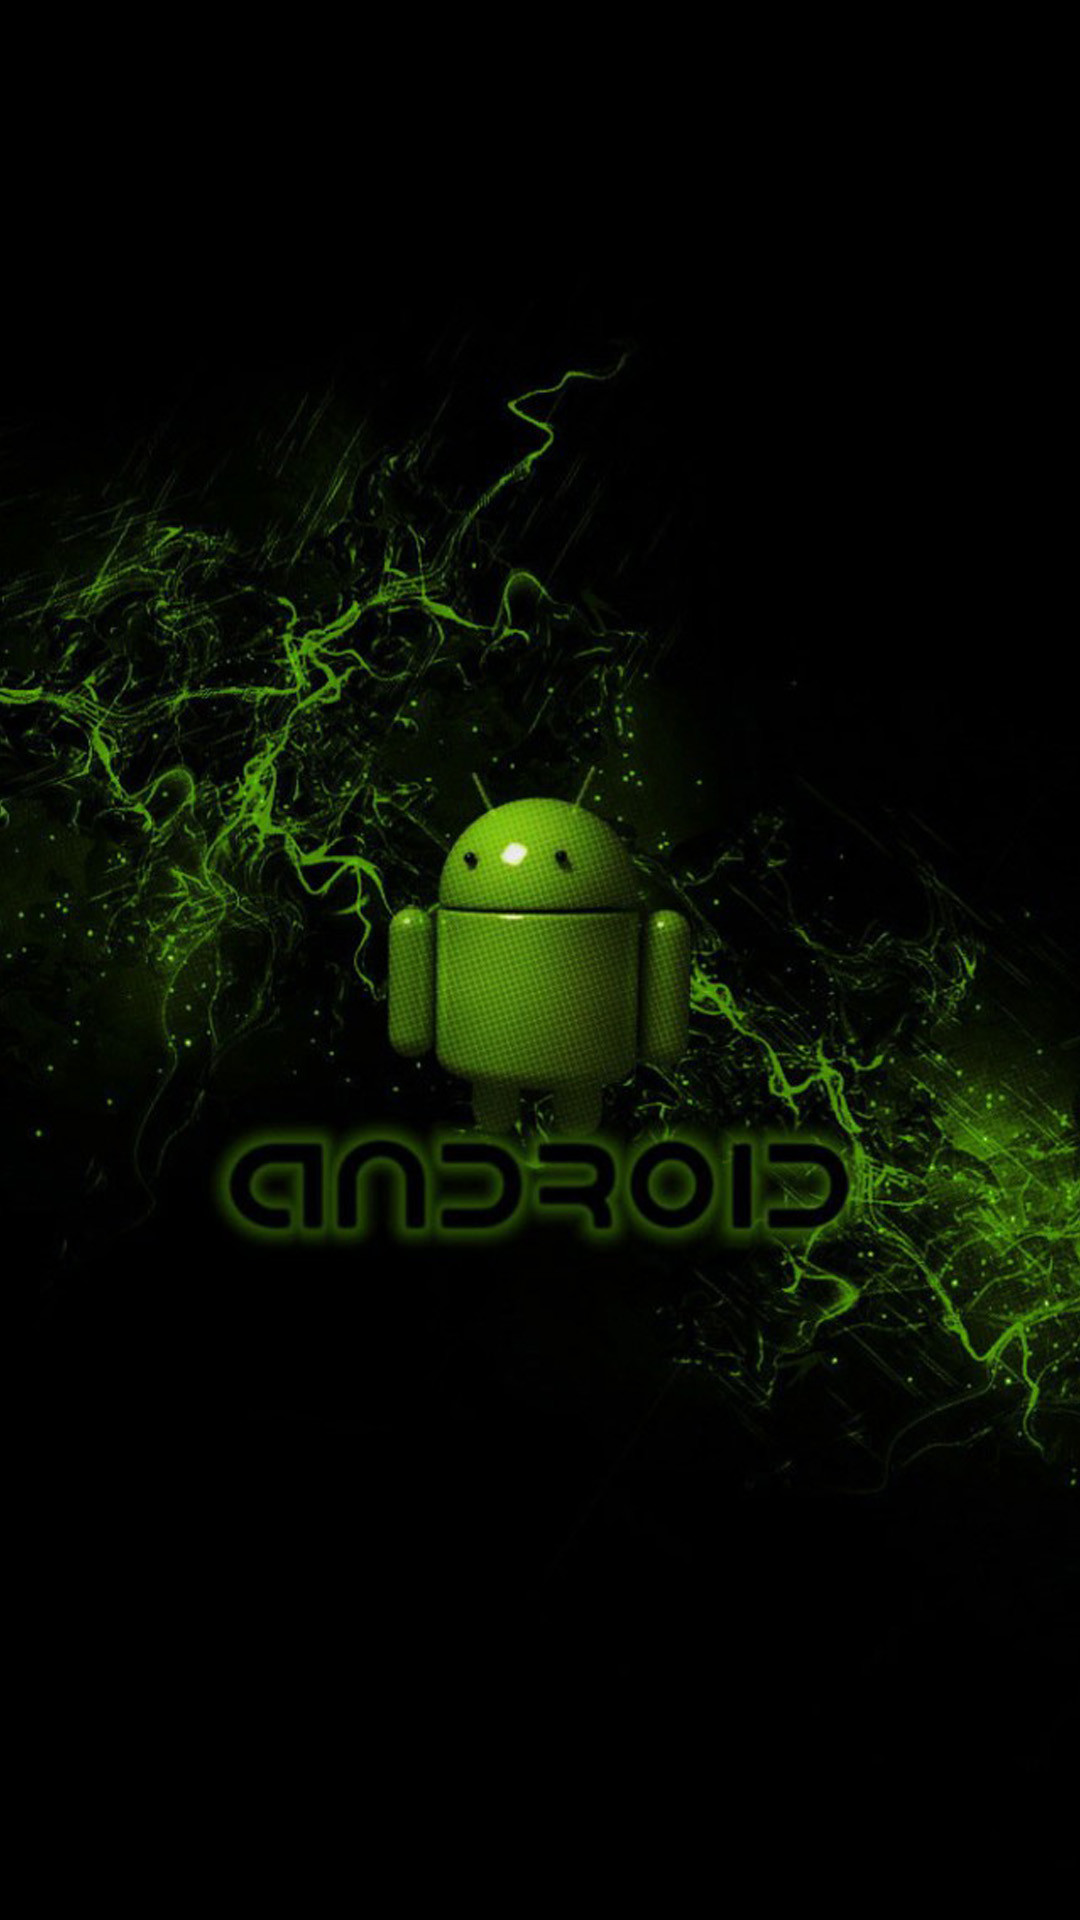 84+ Android Logo Wallpapers on WallpaperPlay.